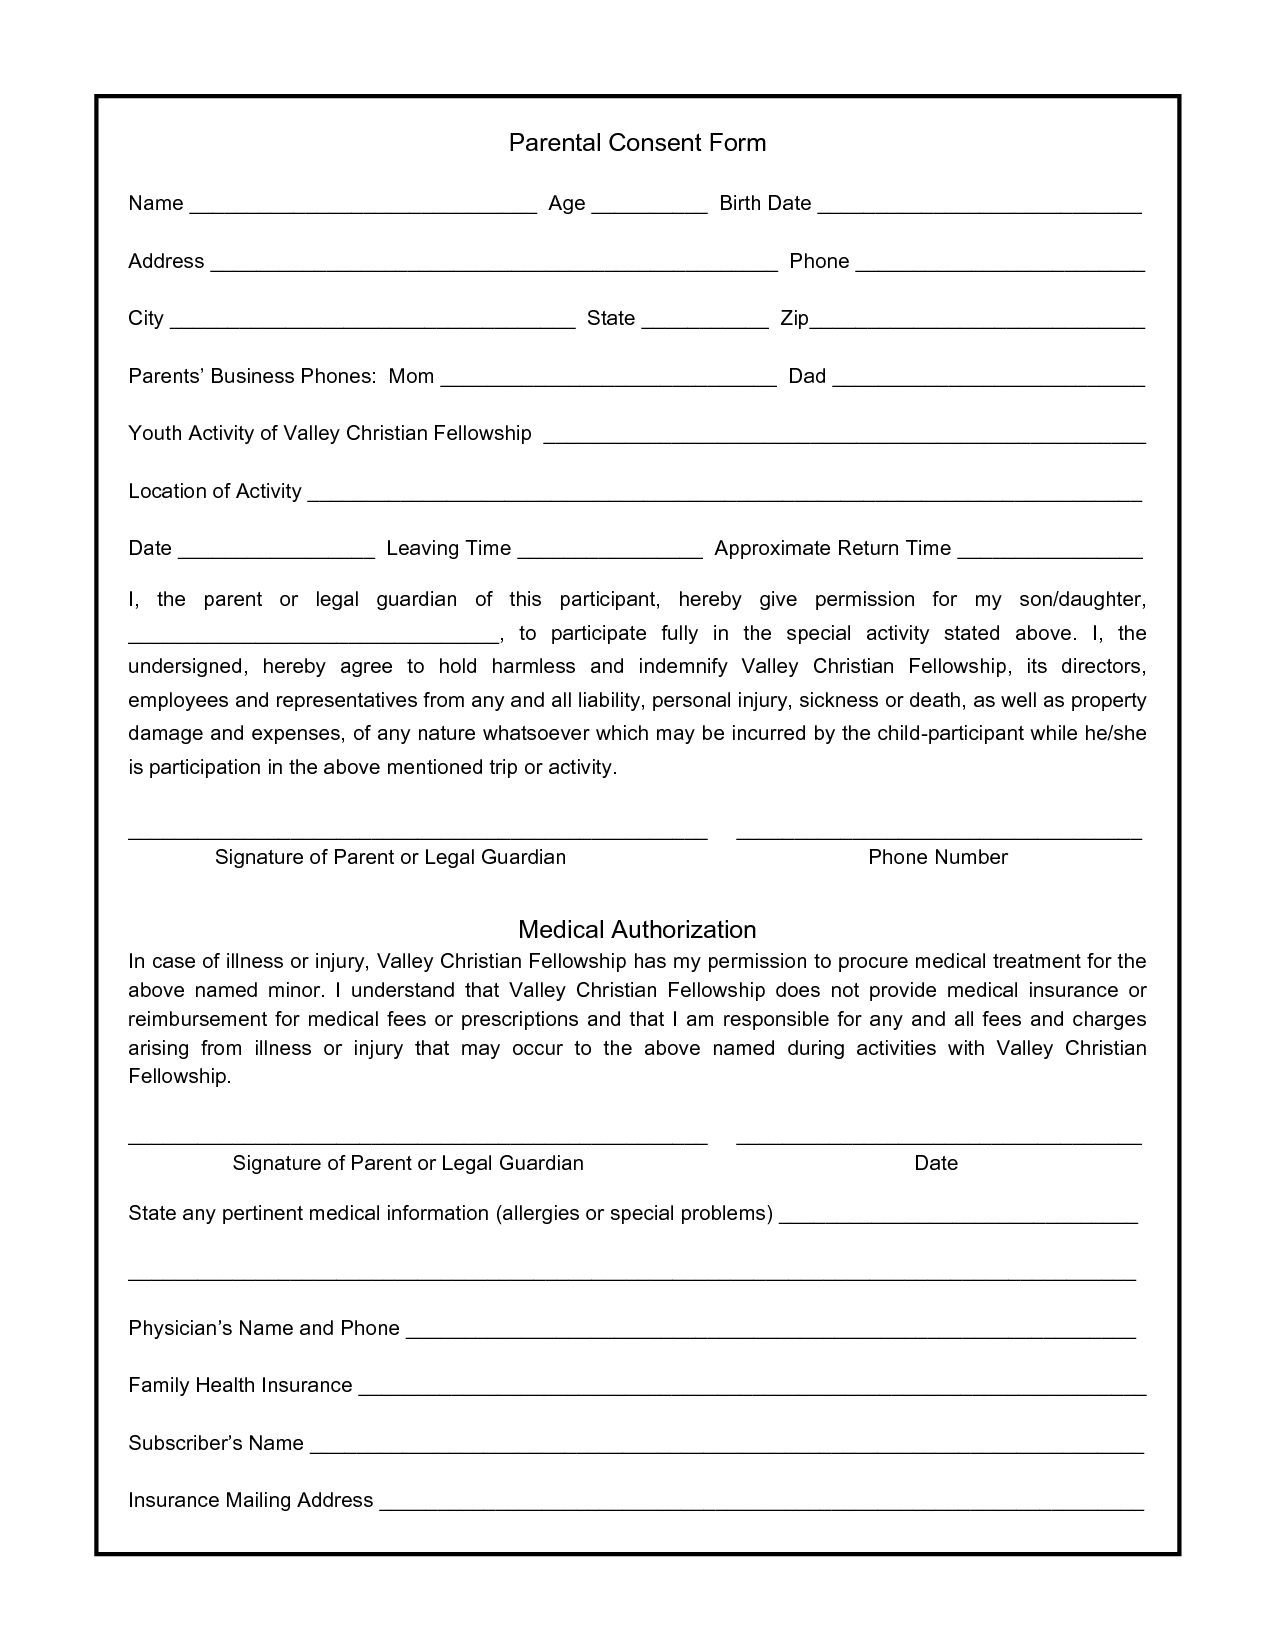 Parental Consent Form For Photos Swifterco parental consent – Permission Forms Template